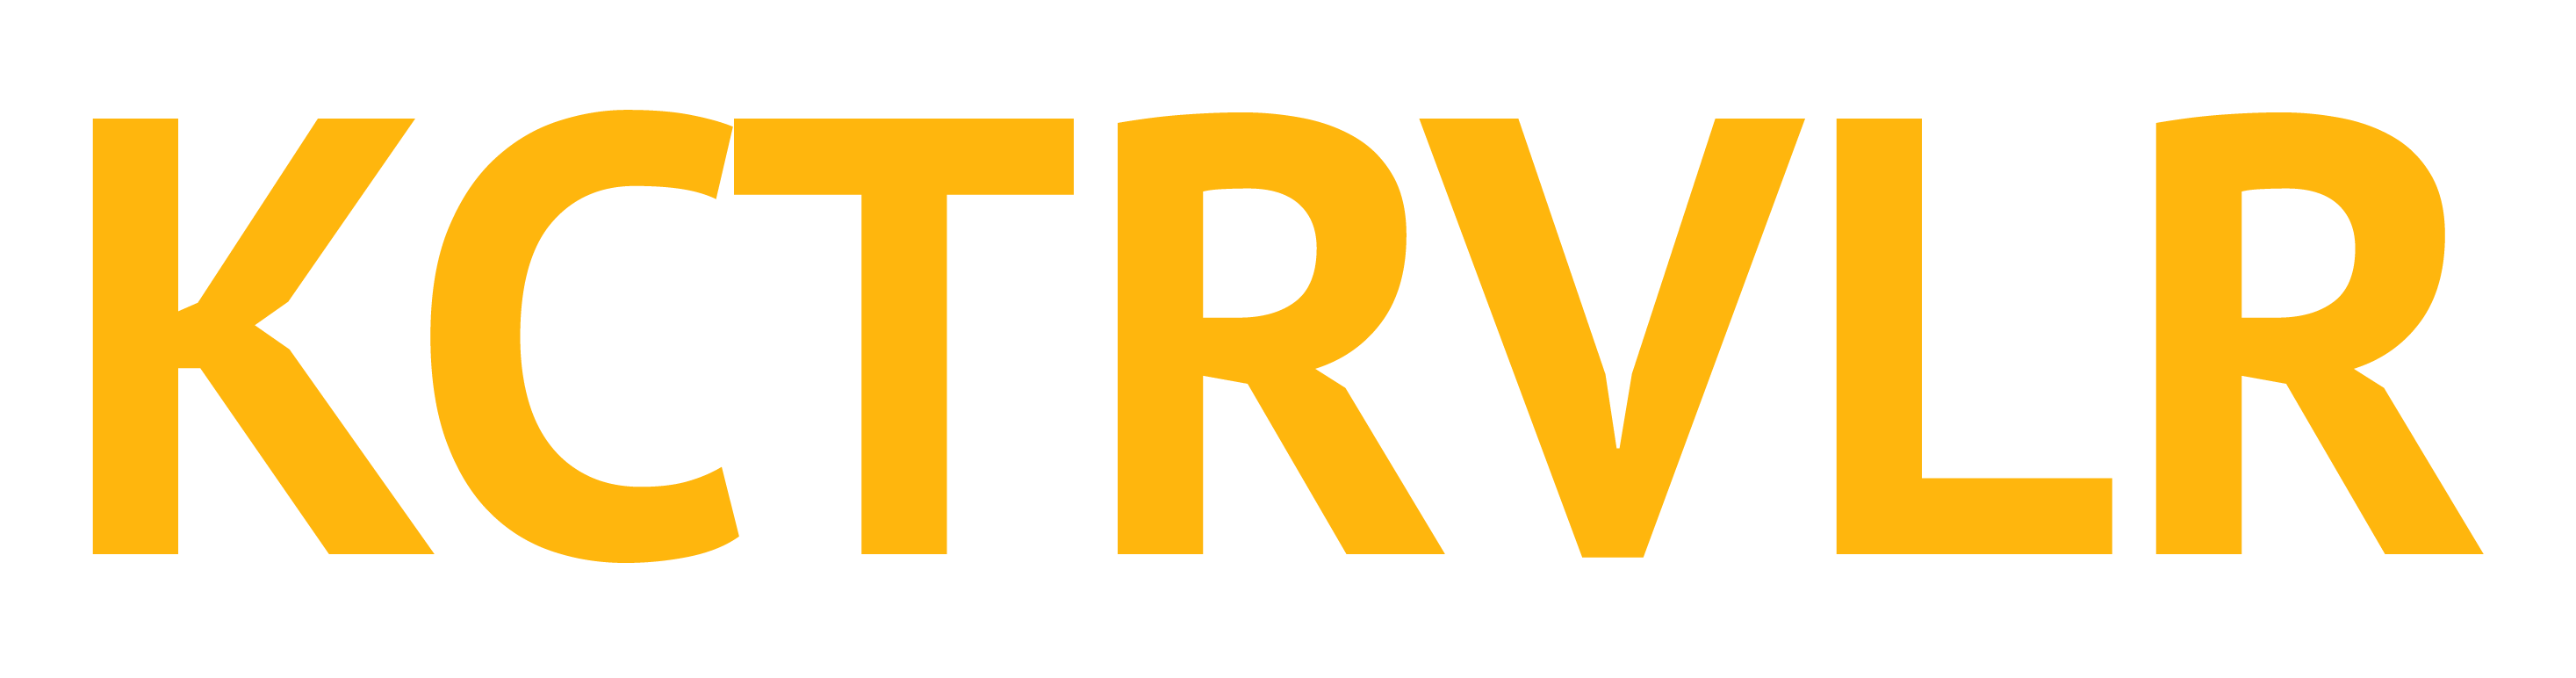 KCTRVLR Logo